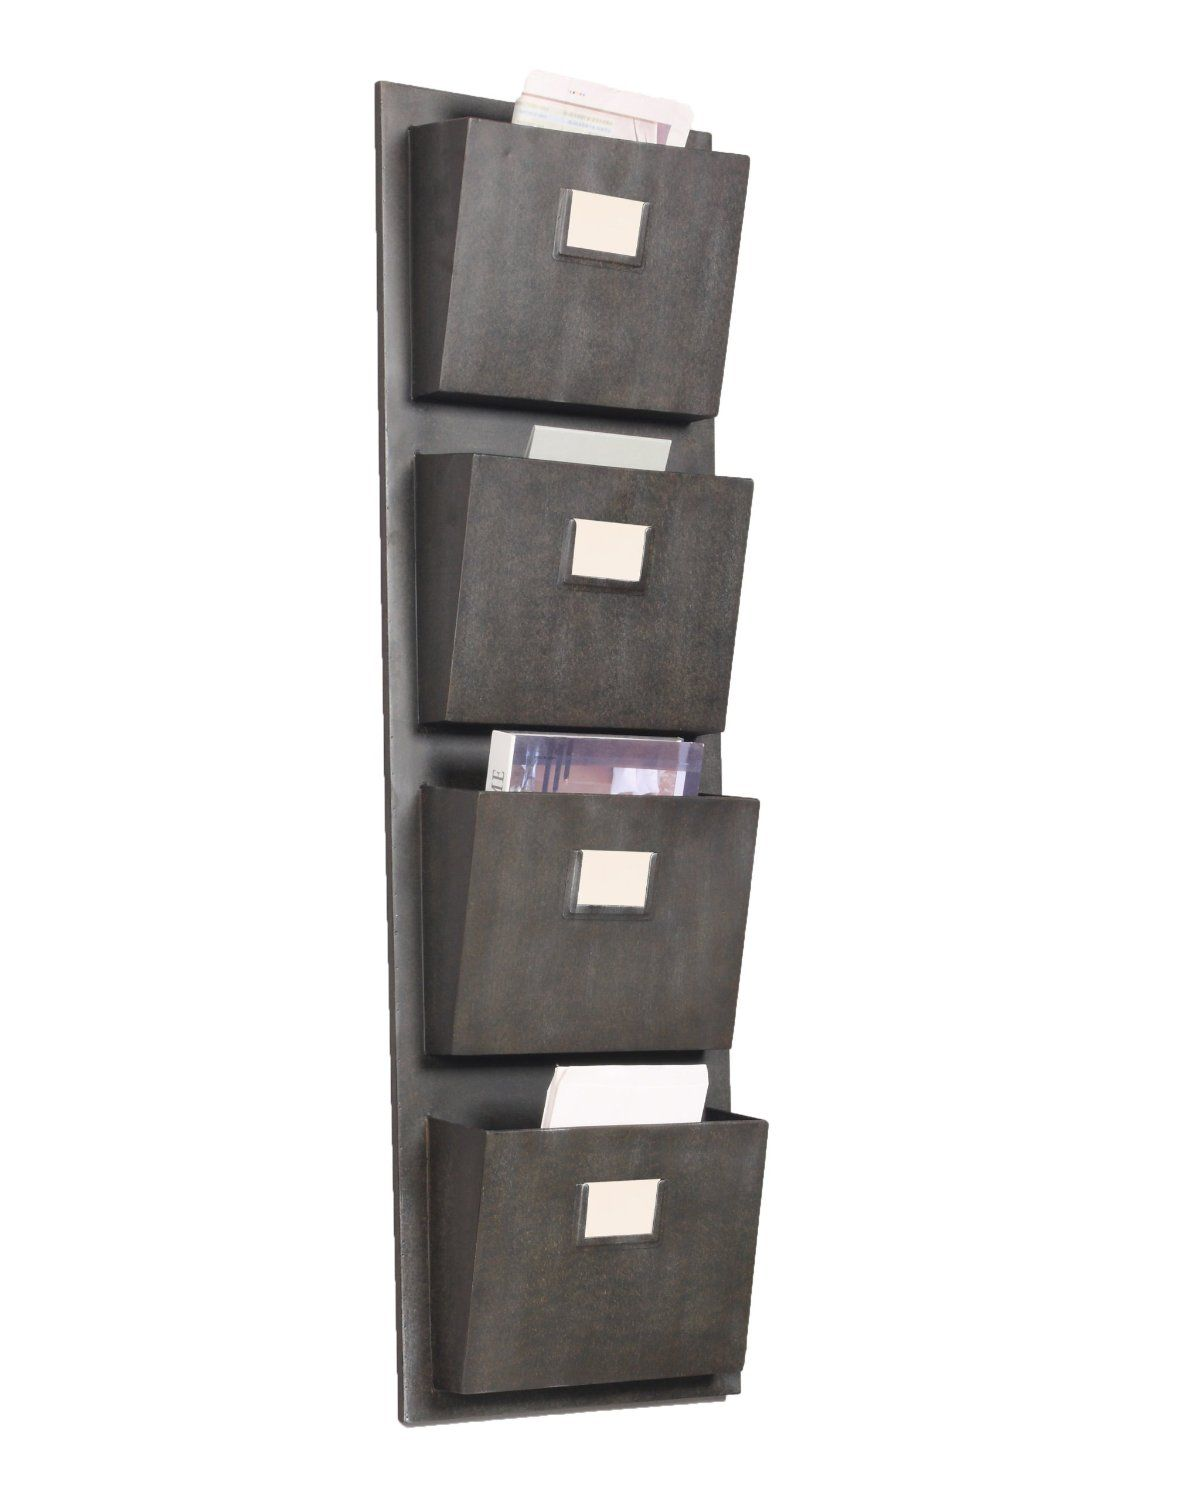 4 Slot Hanging Metal Mailbox Organizing Products Pinterest